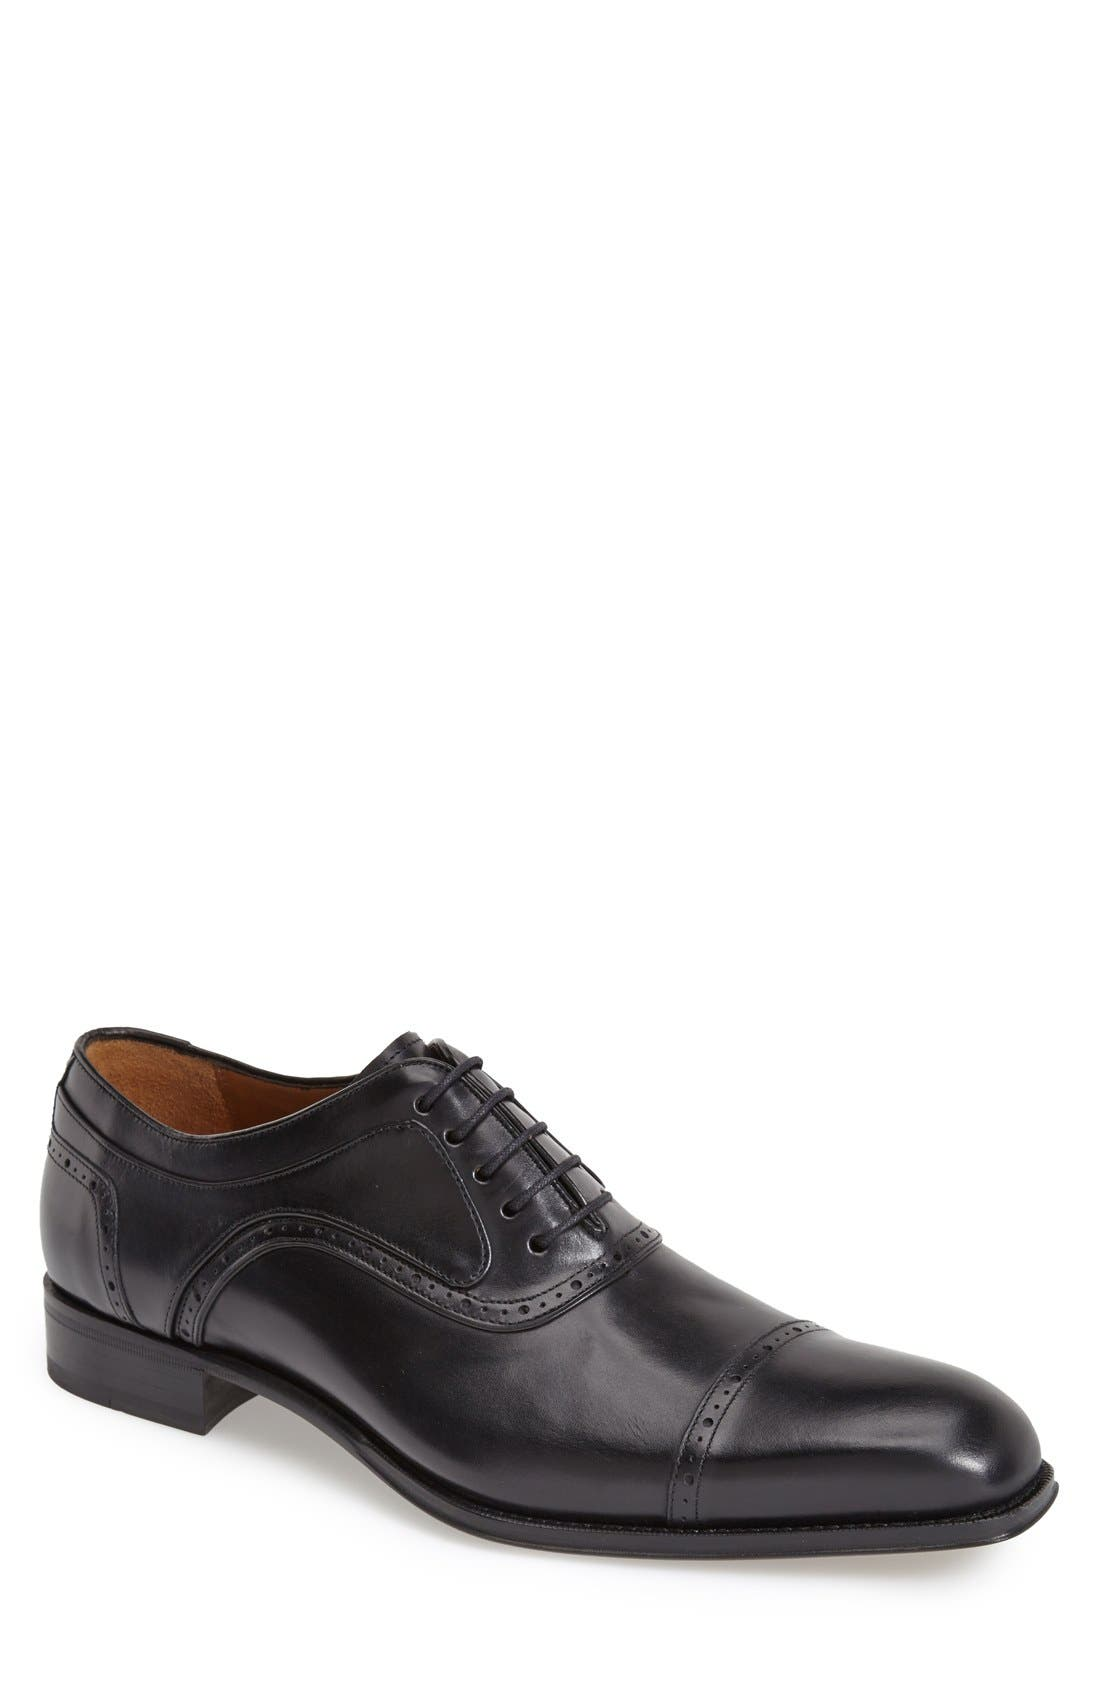 'March' Cap Toe Oxford,                             Main thumbnail 1, color,                             BLACK